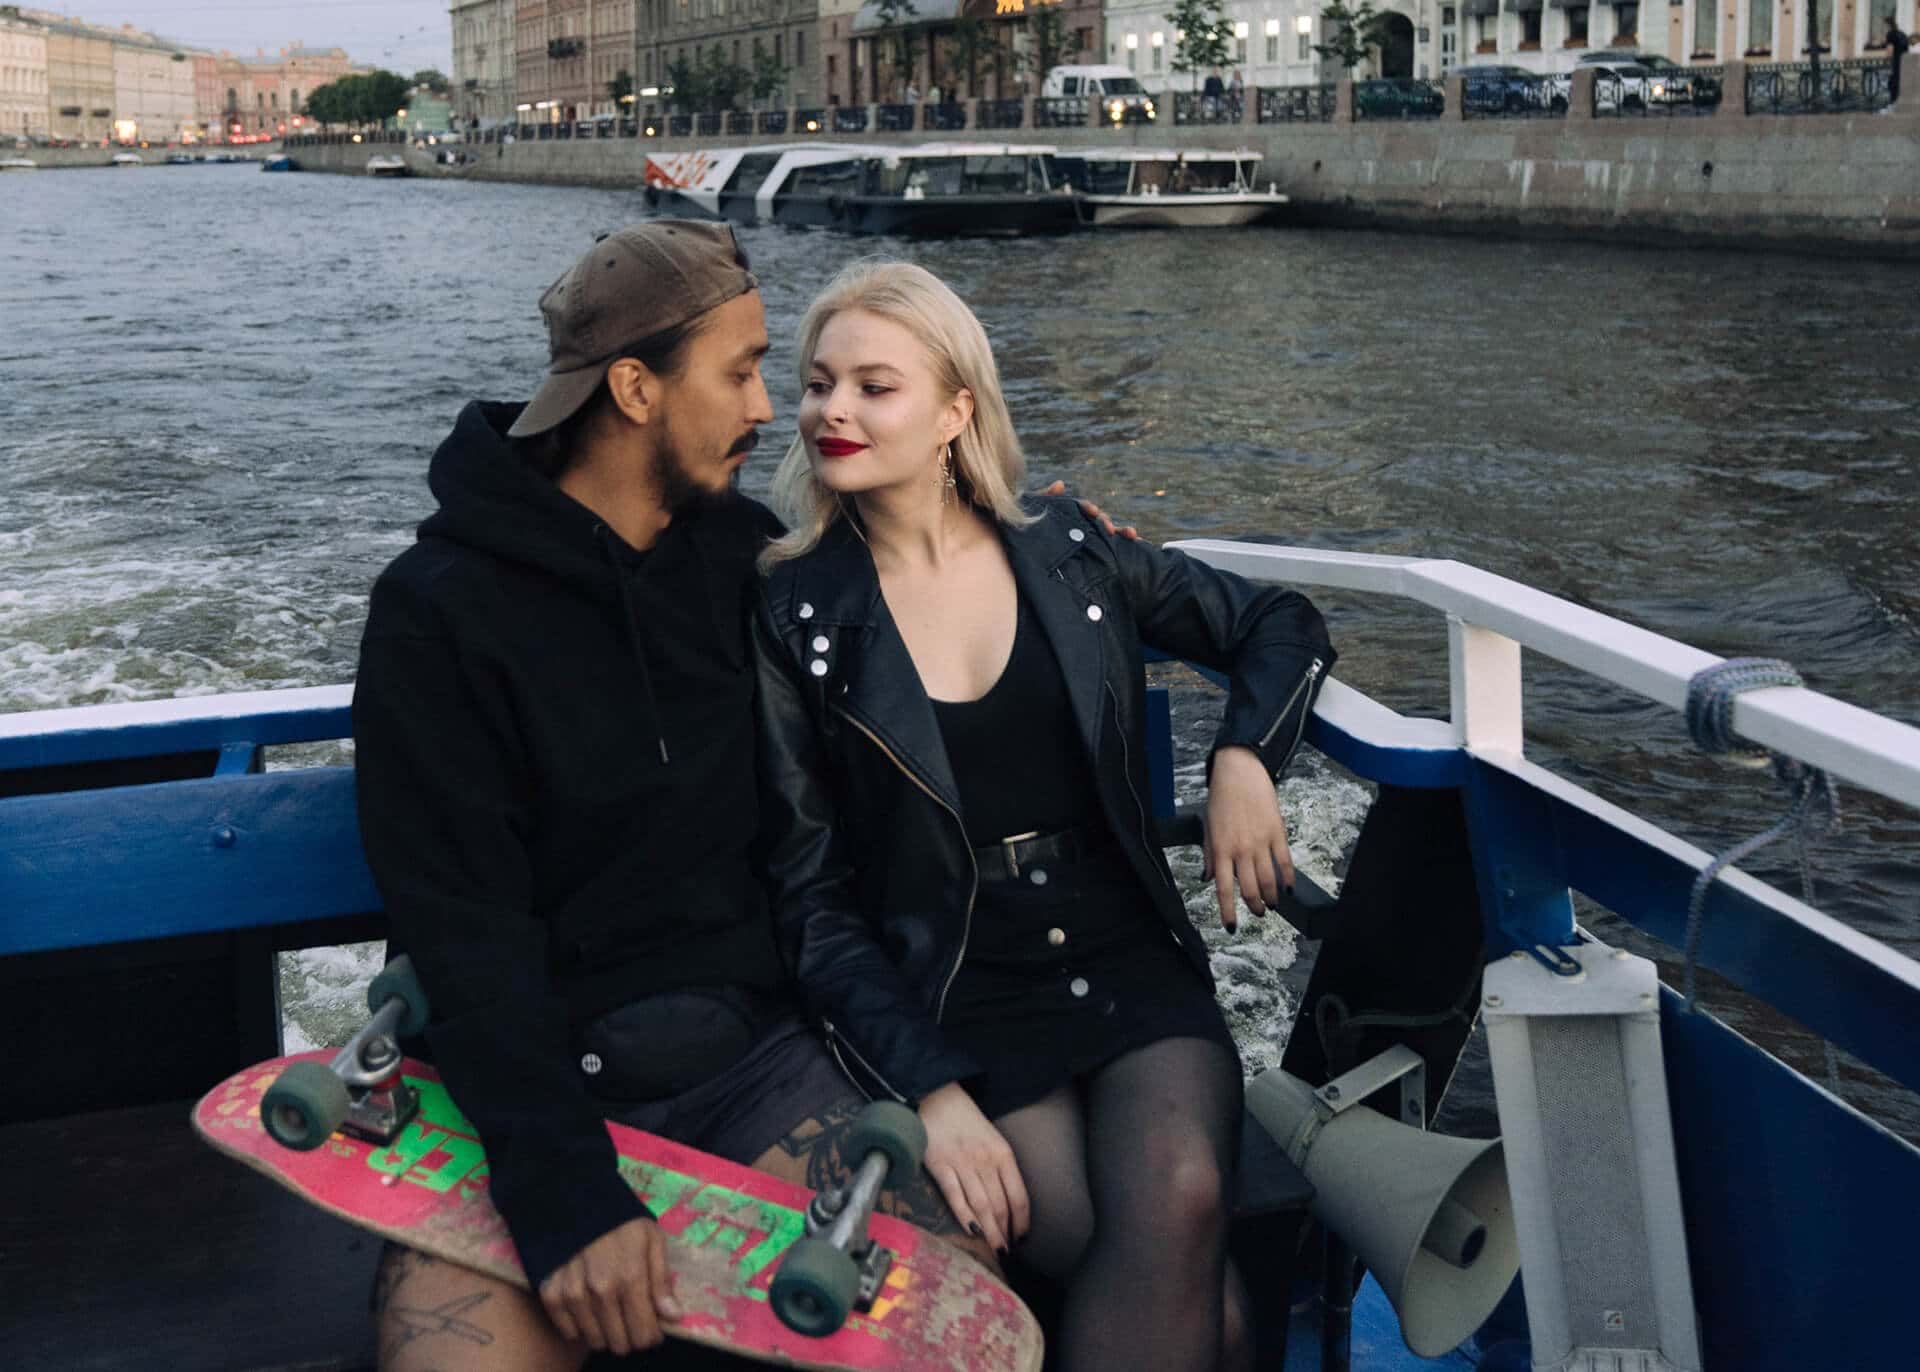 couple on third date on a boat